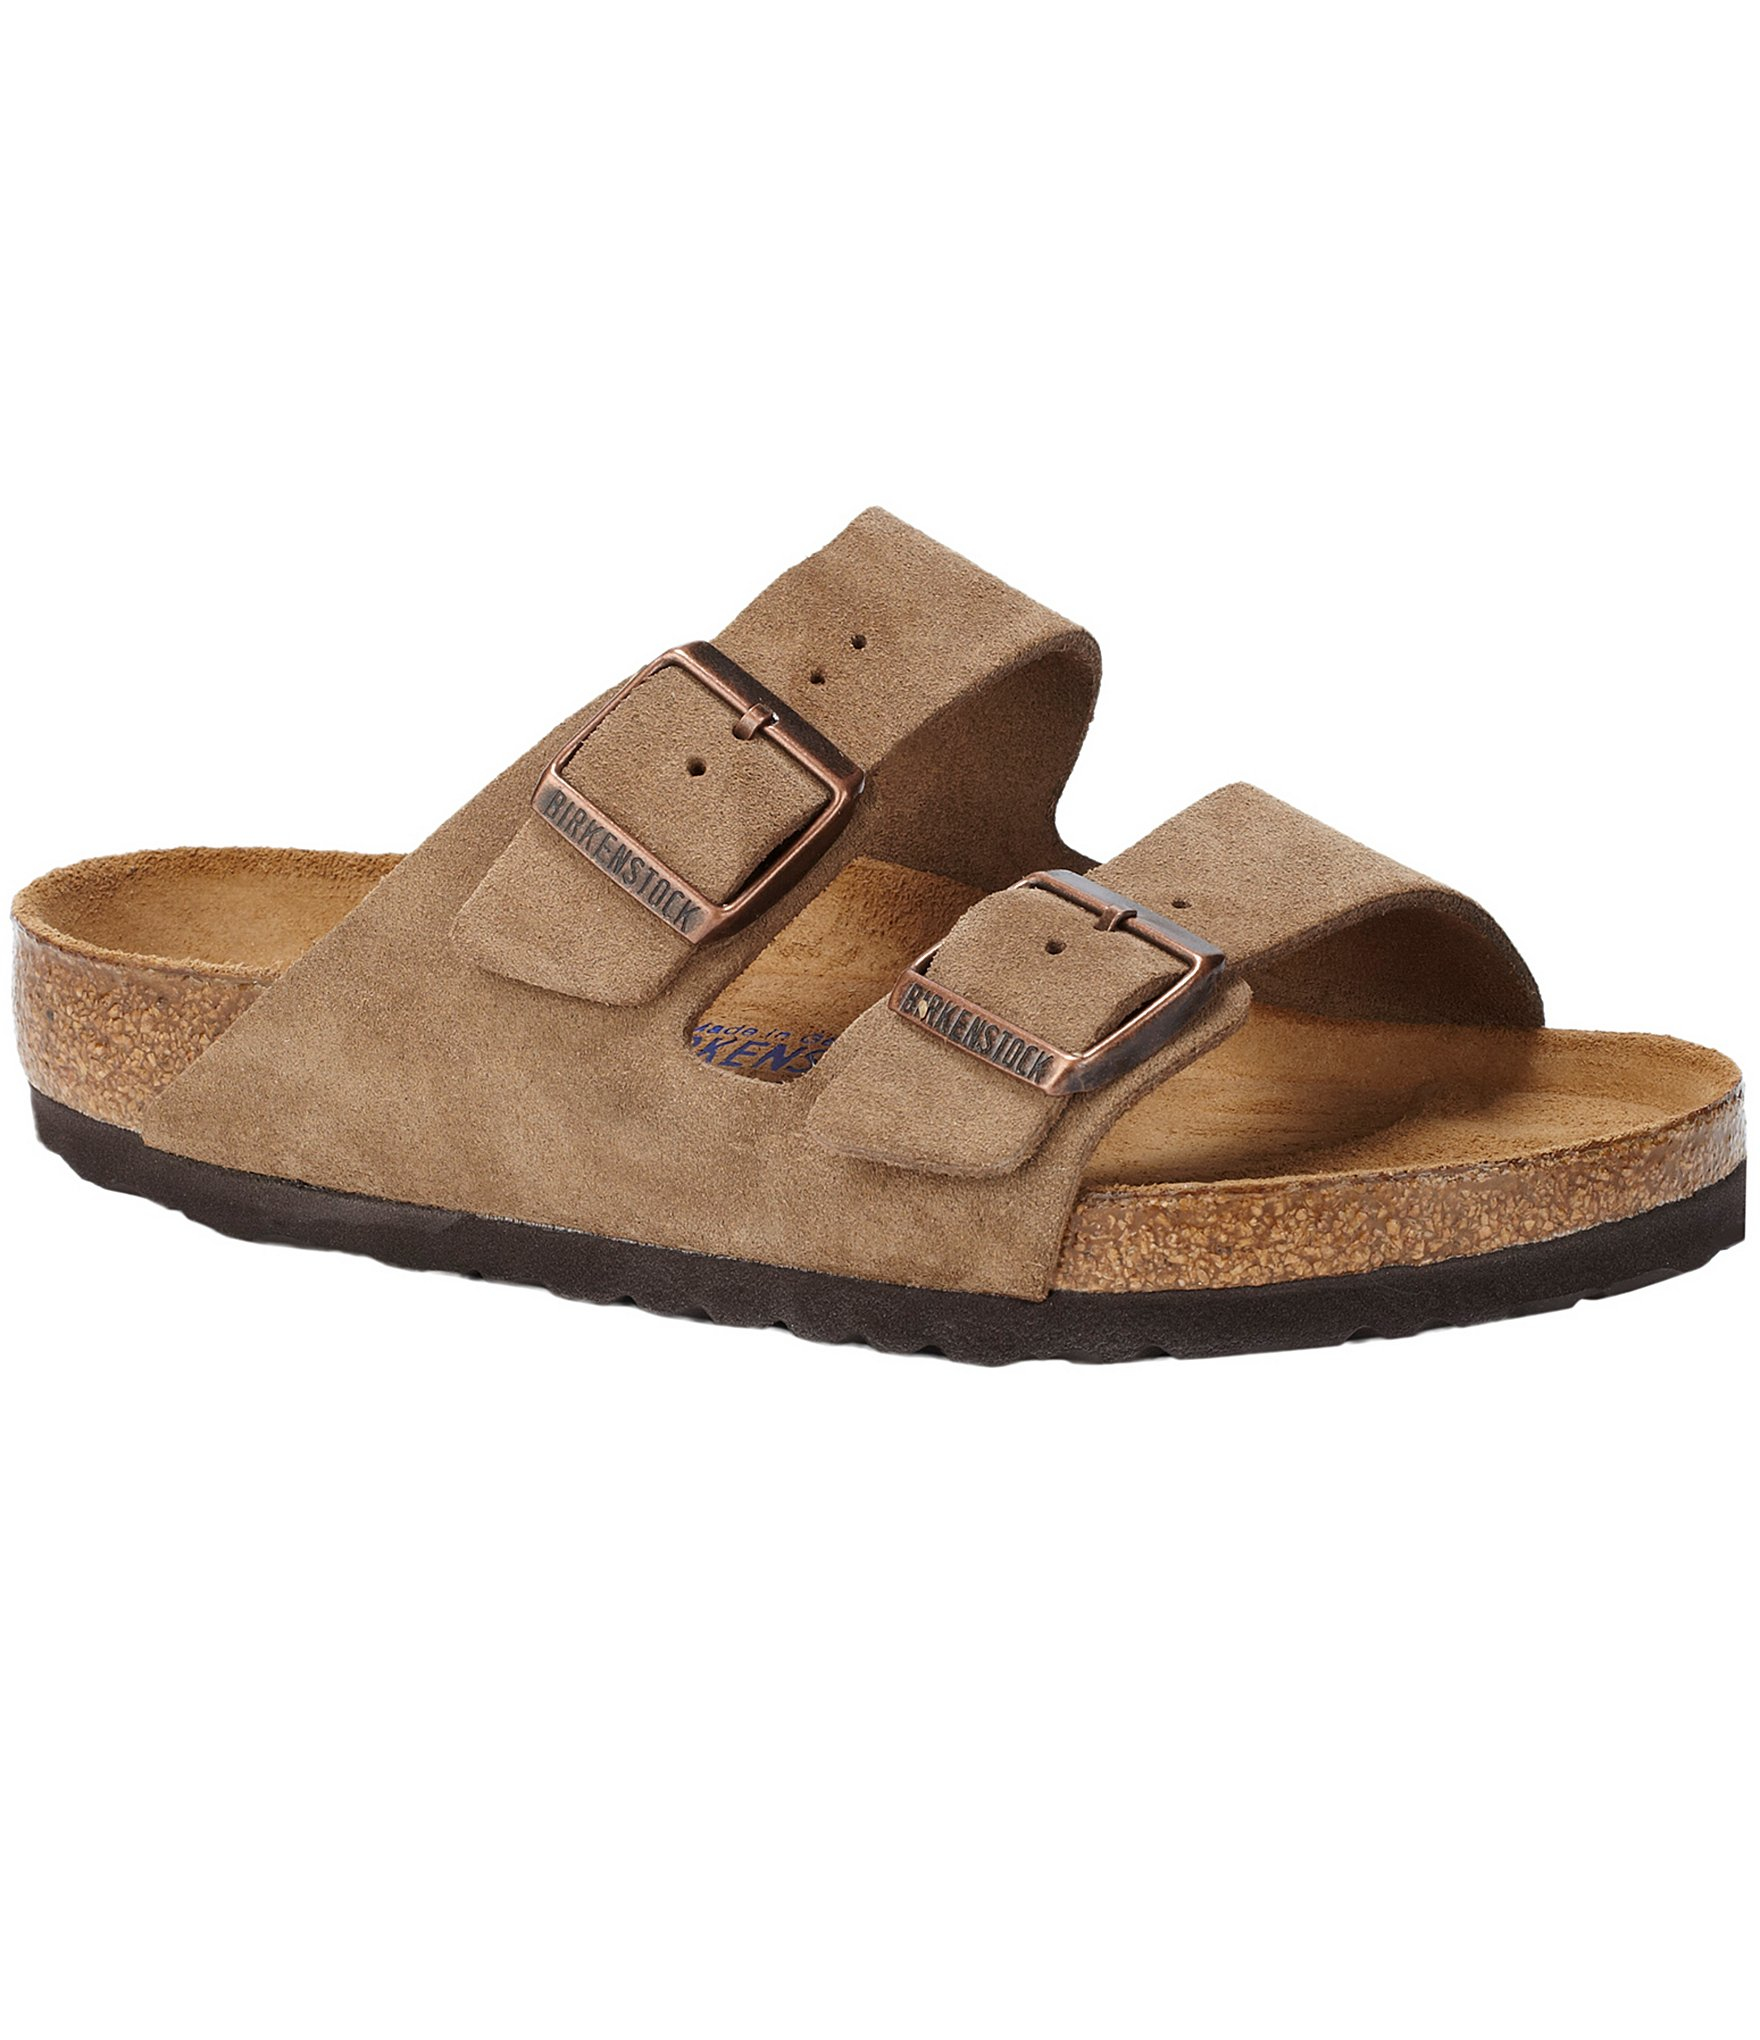 Birkenstock Arizona Suede Sandals in Brown